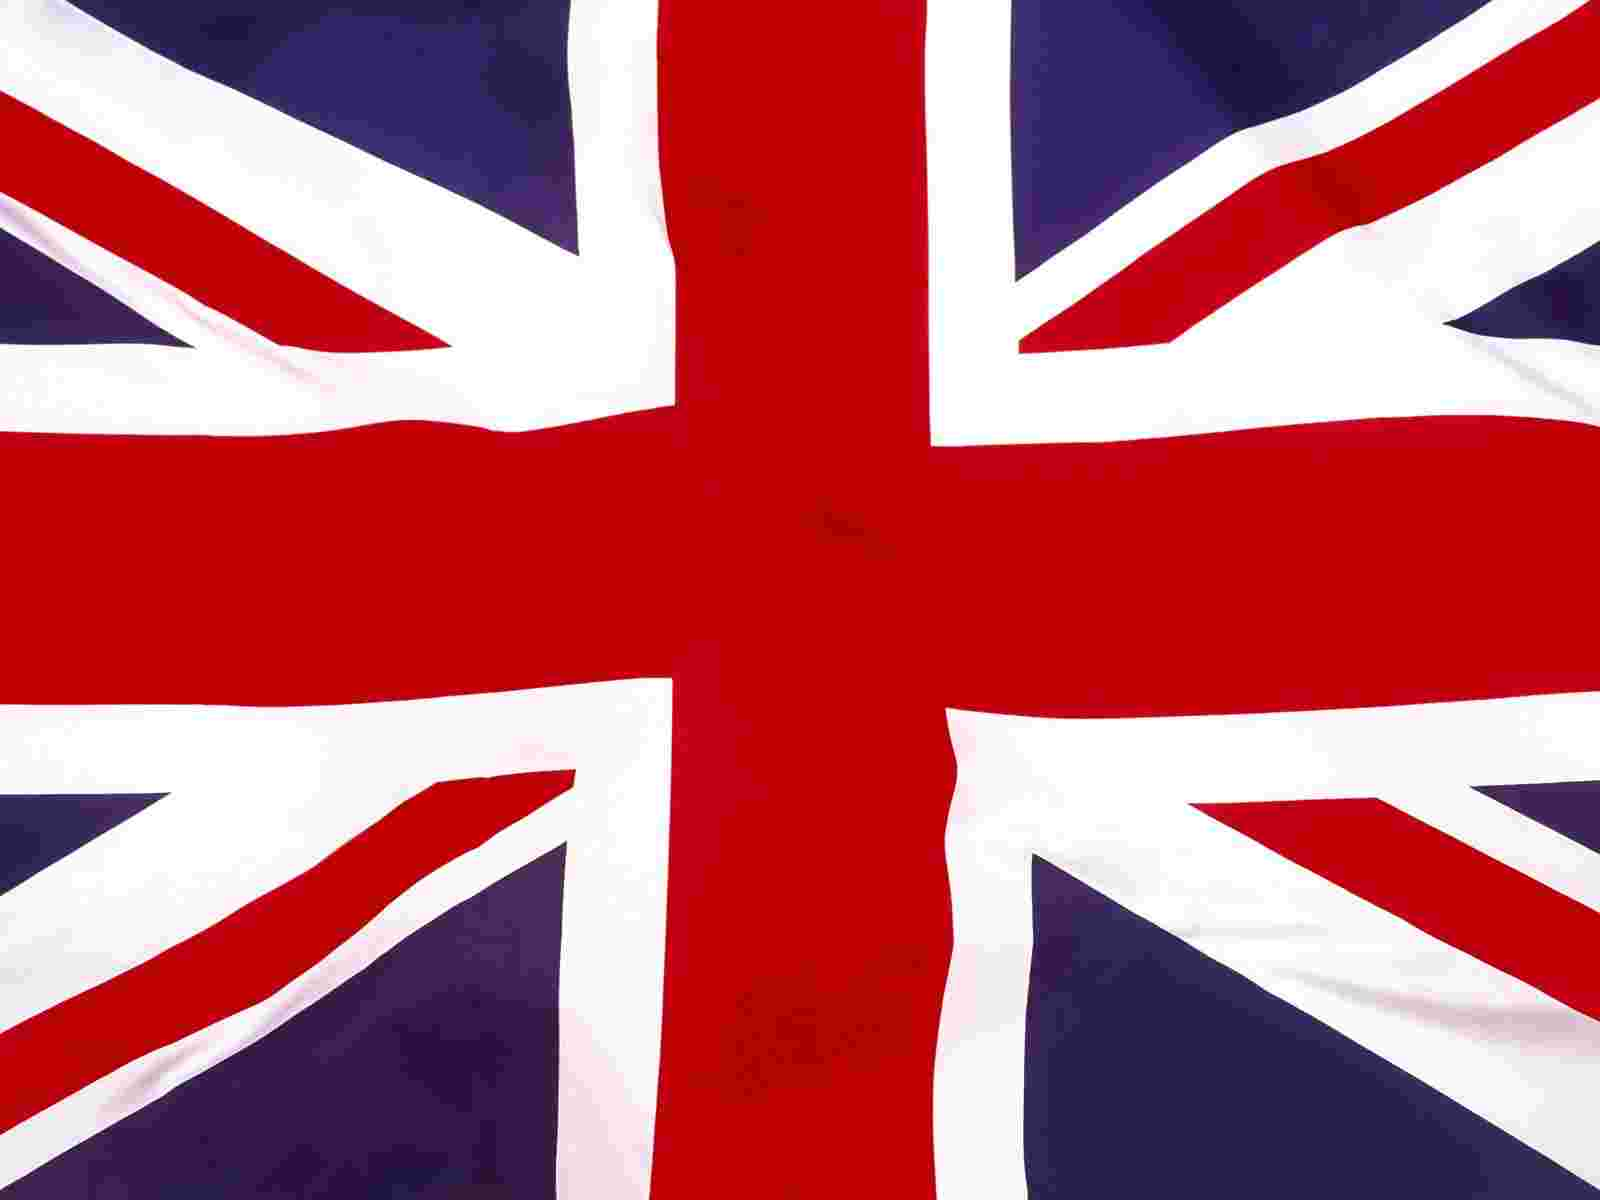 United Kingdom wallpaper   Flags   Other   Wallpaper Collection 1600x1200